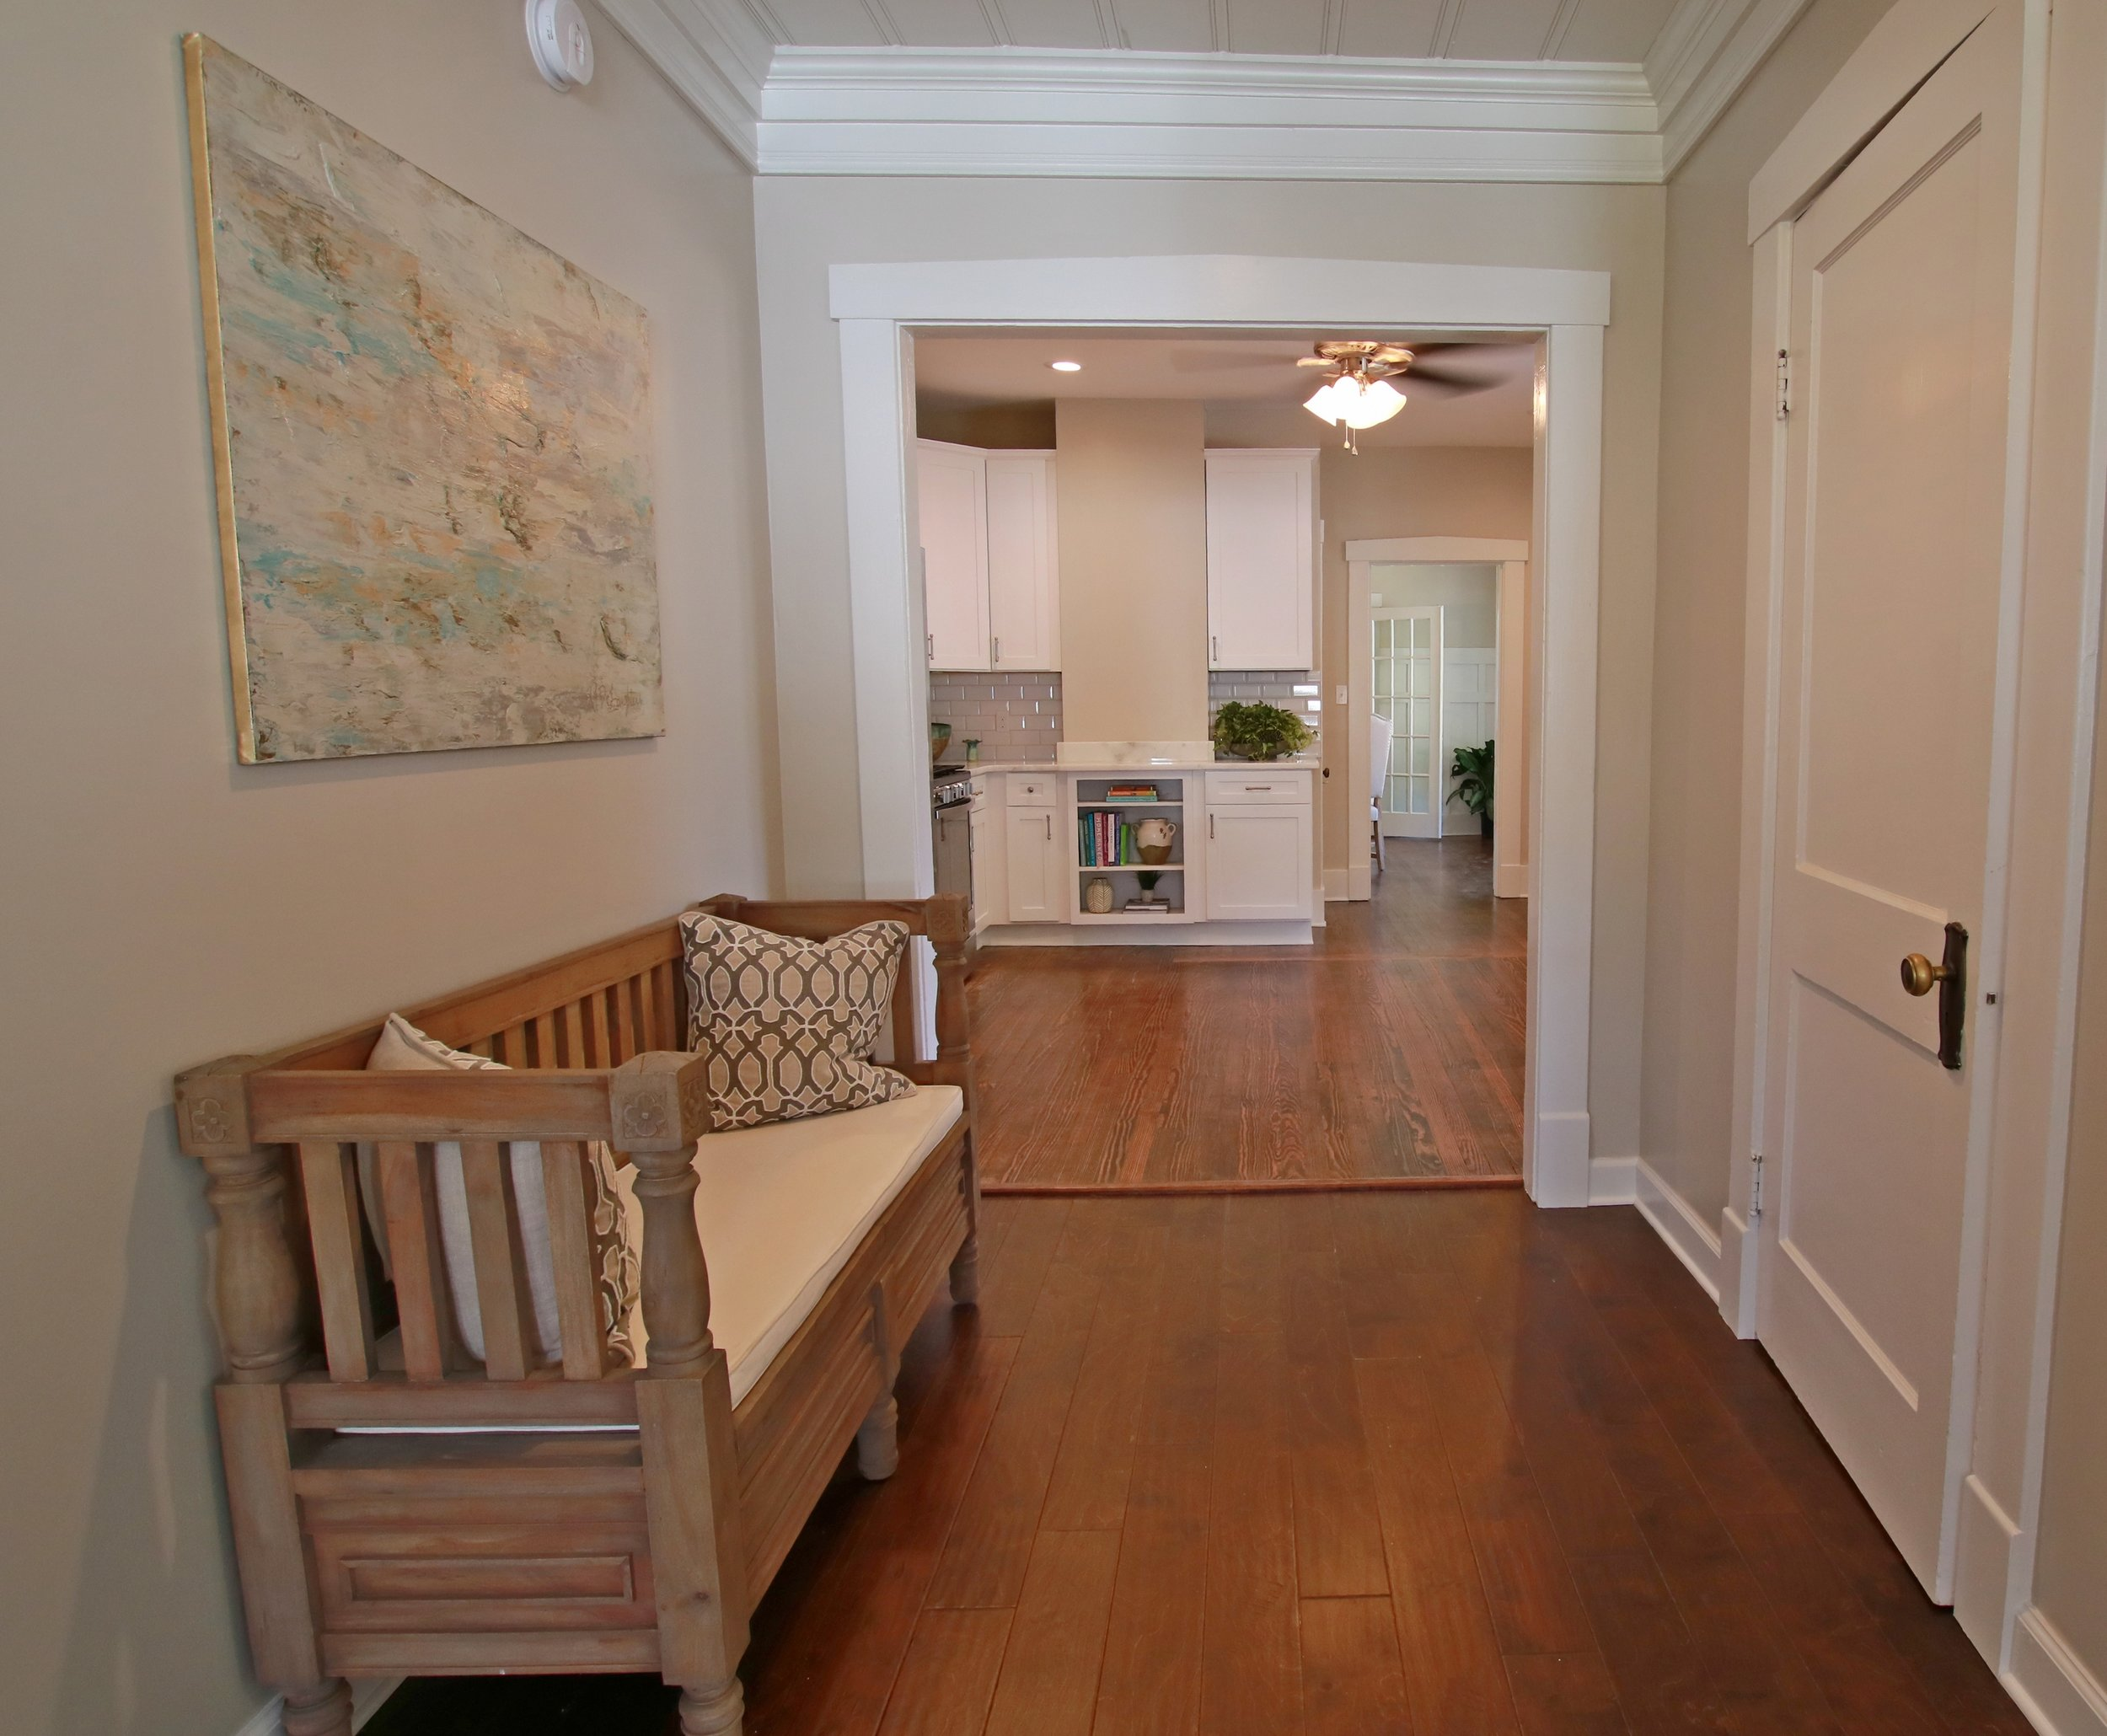 Prime Design Memphis, LLC - Den, Family Room, Sherwin Williams Agreeable Gray, Harwood Floors, Bench, Neutral, Art